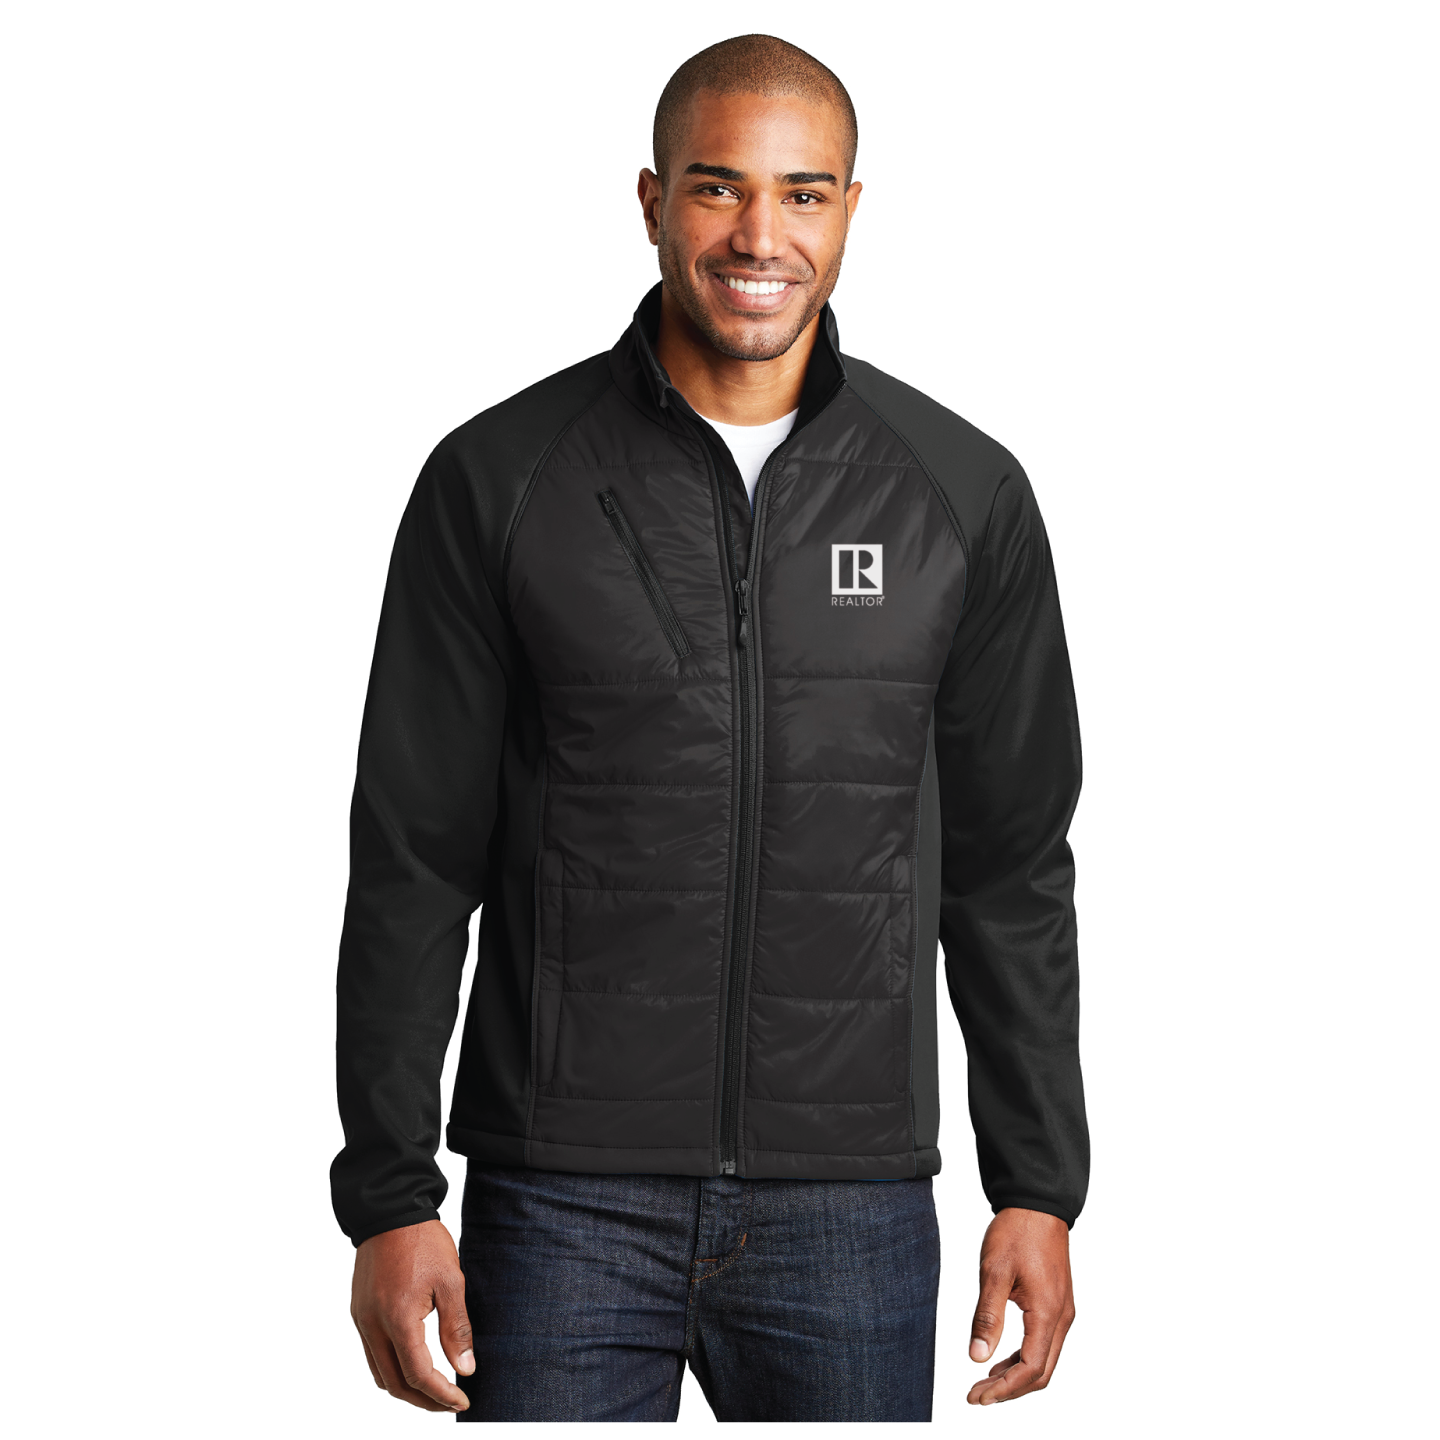 Men's Quilted Softshell Mashup - RCG4674